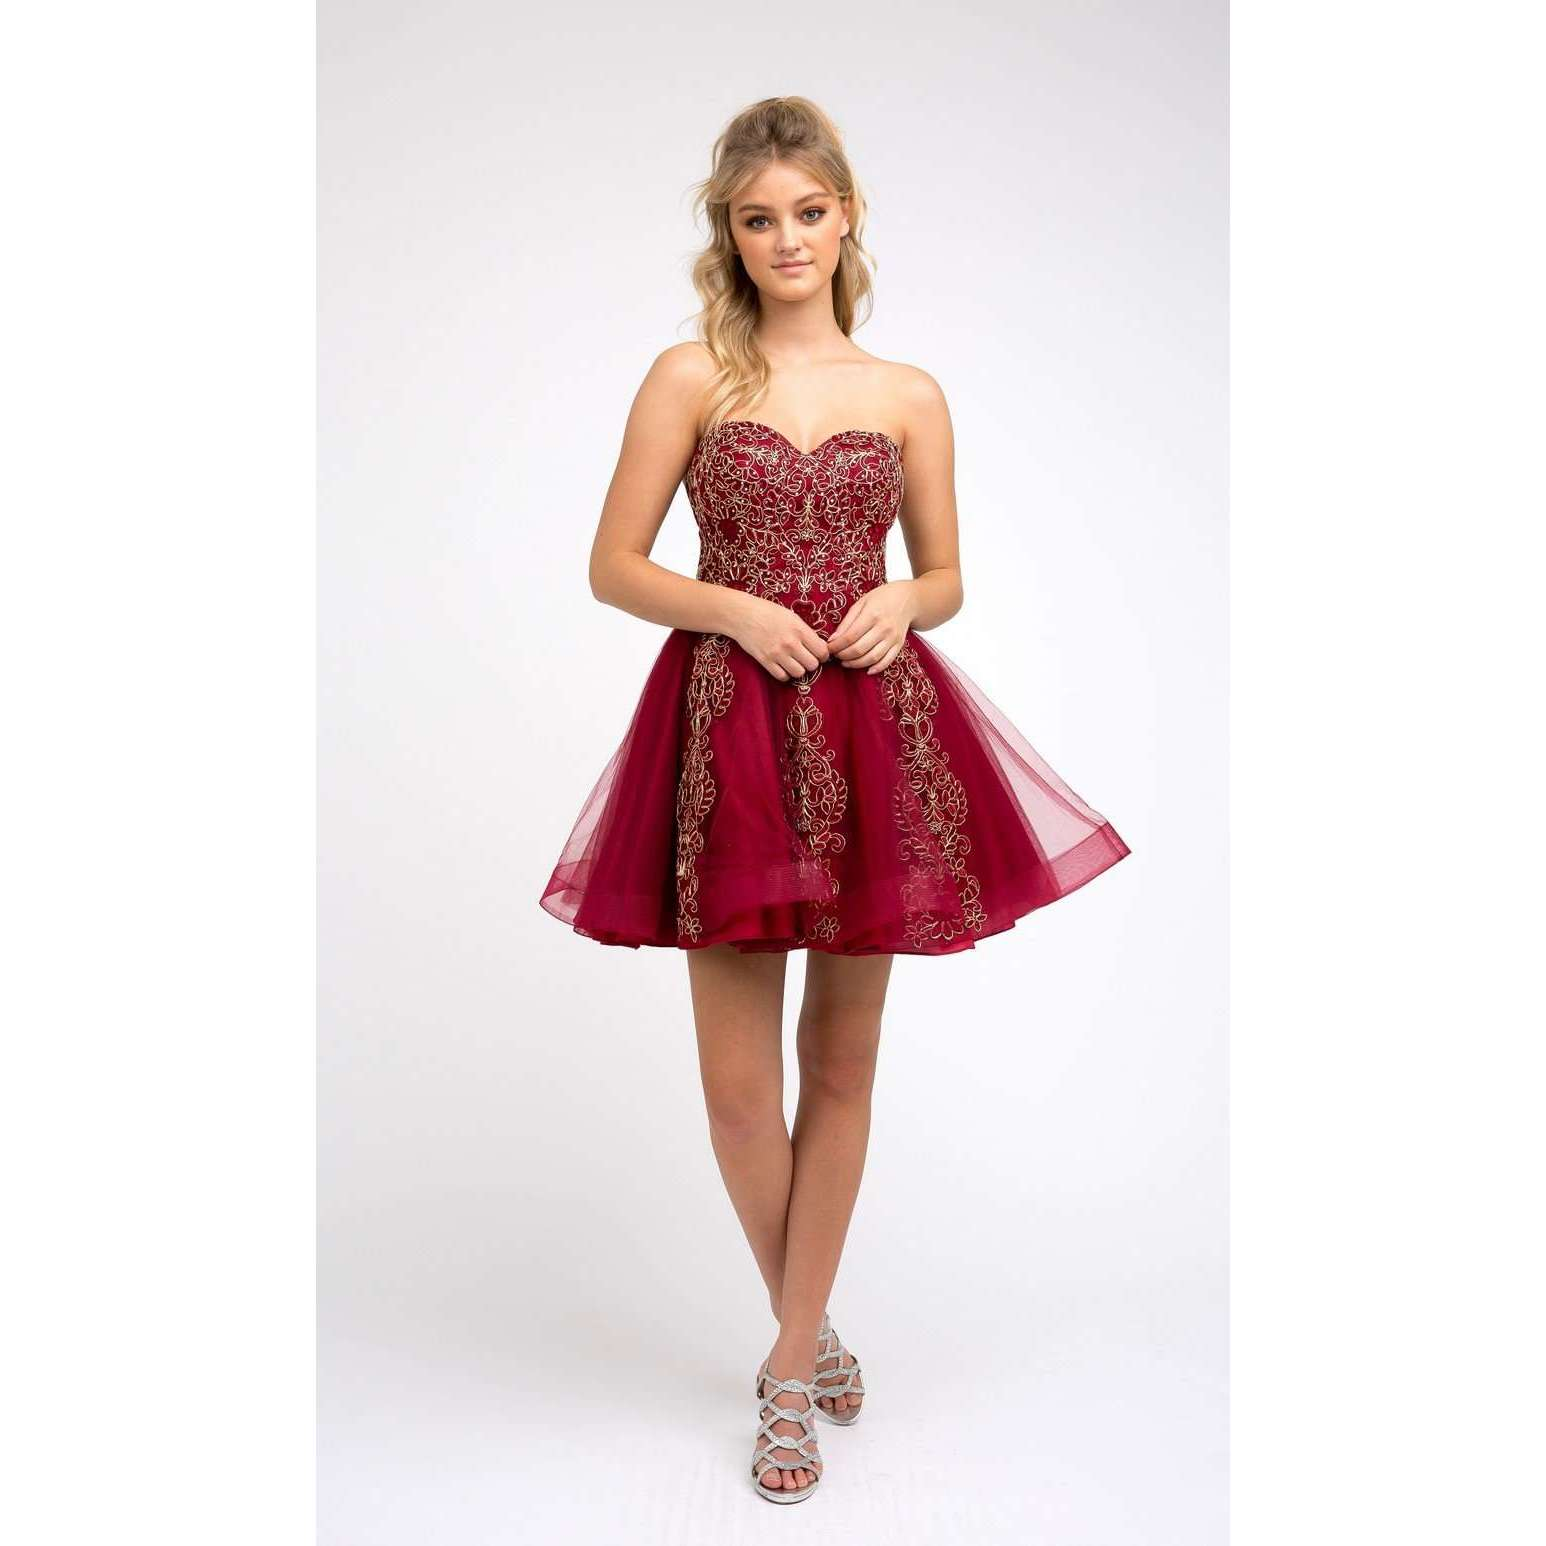 Embroidered Details Corset Back Hoco Short Dress 837 - Julietdresses